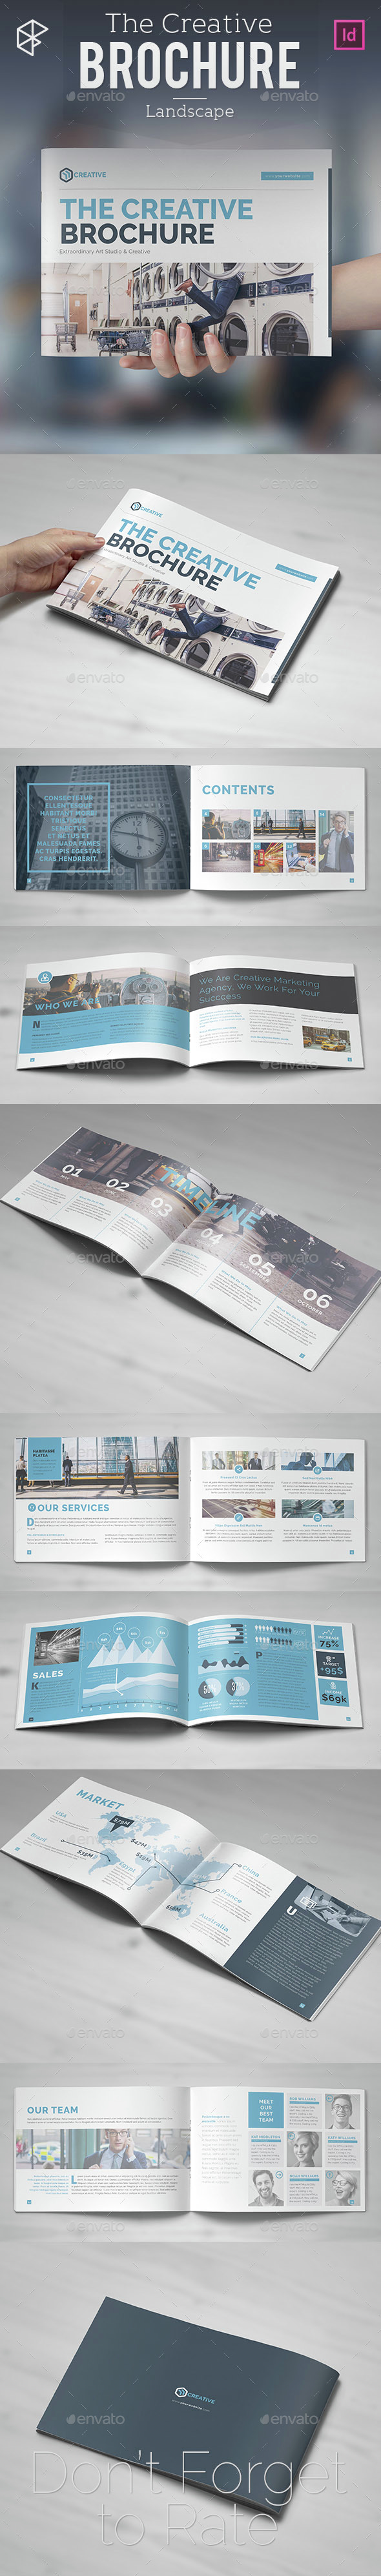 The Creative Brochure - Landscape - Informational Brochures